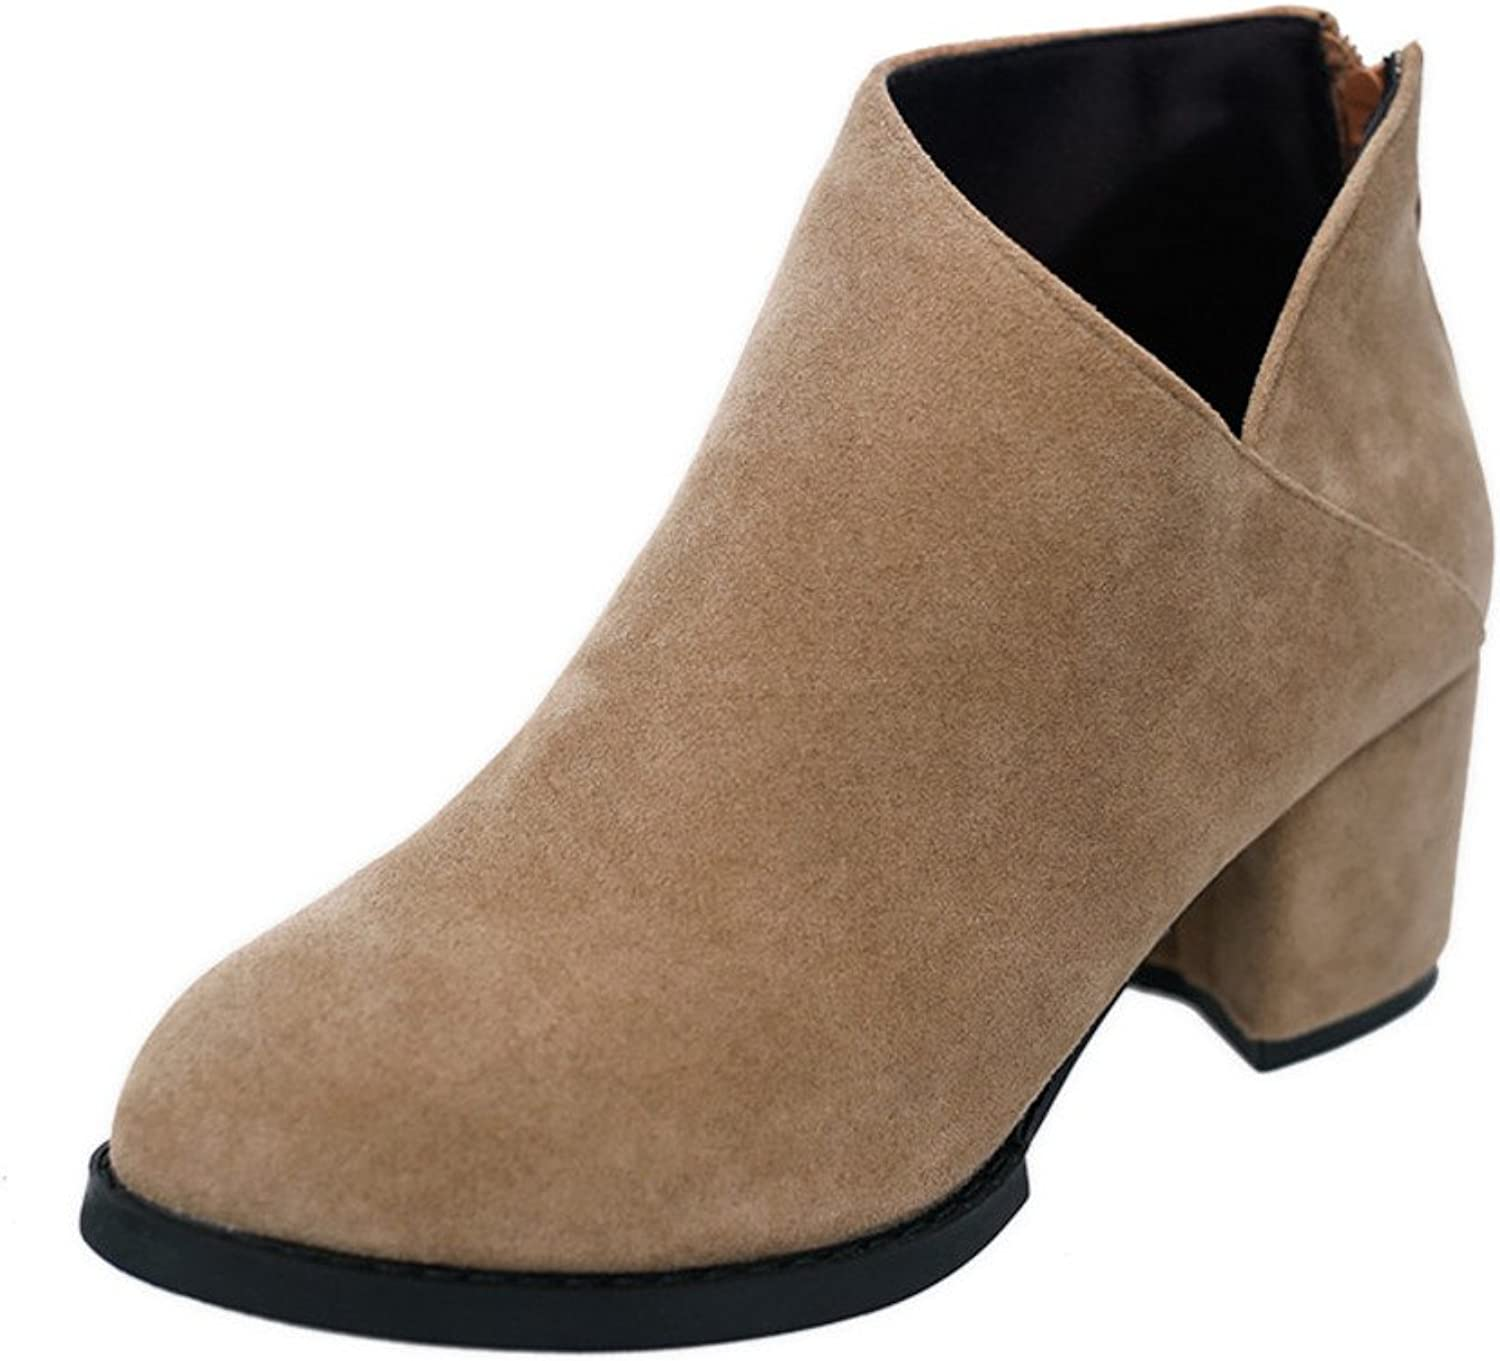 Spring shoes Short Boots Nude Boots Martin Boots Rough Suede Zip high Heels Women's shoes